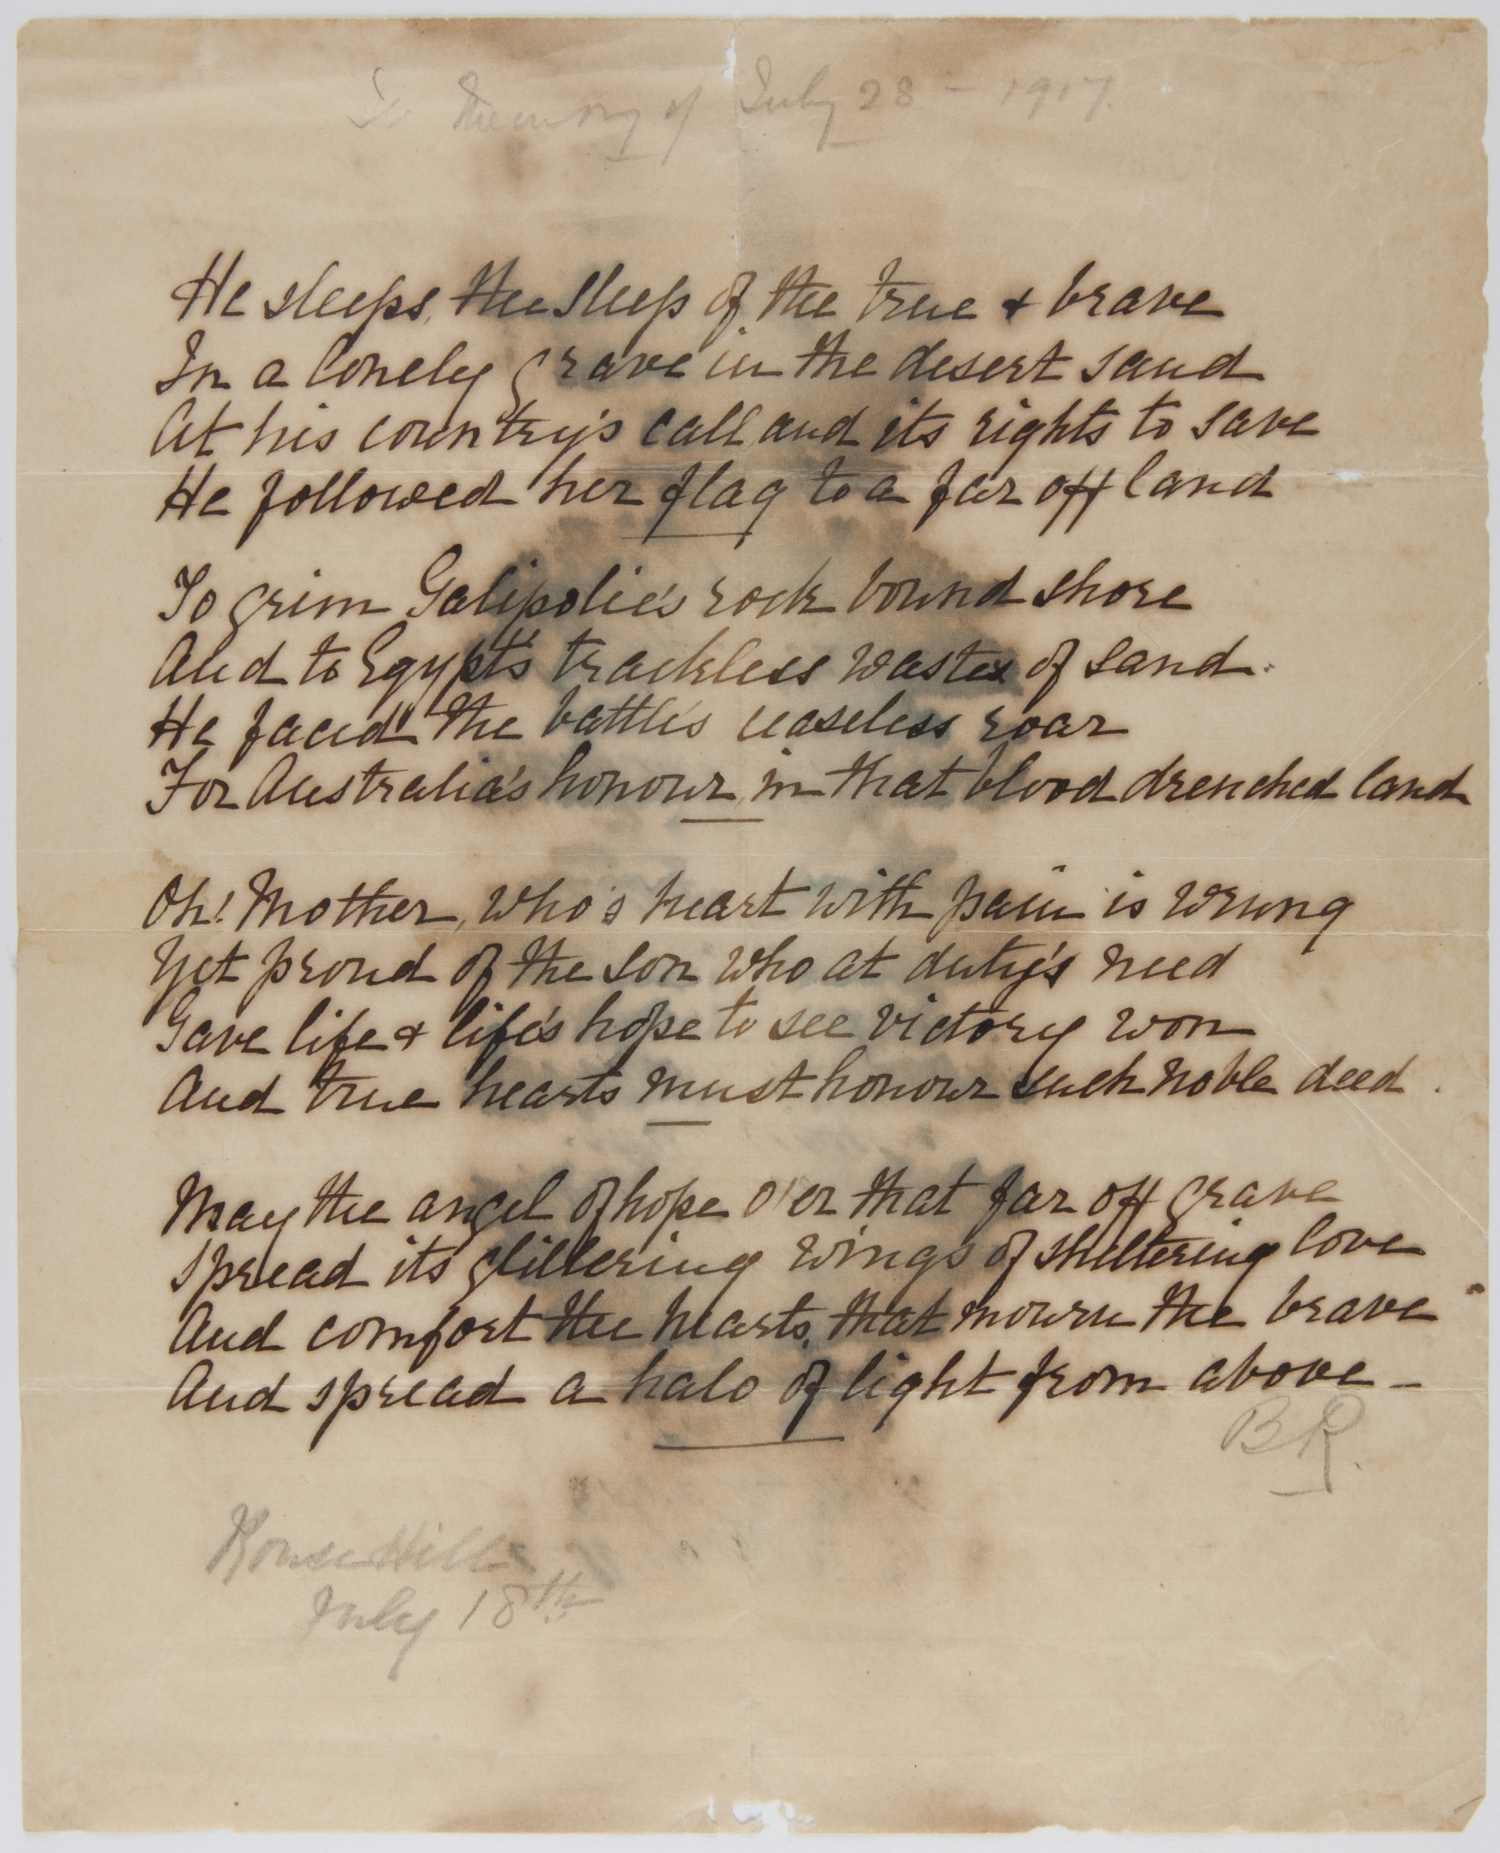 Handwritten poem on paper that has been marked by water.